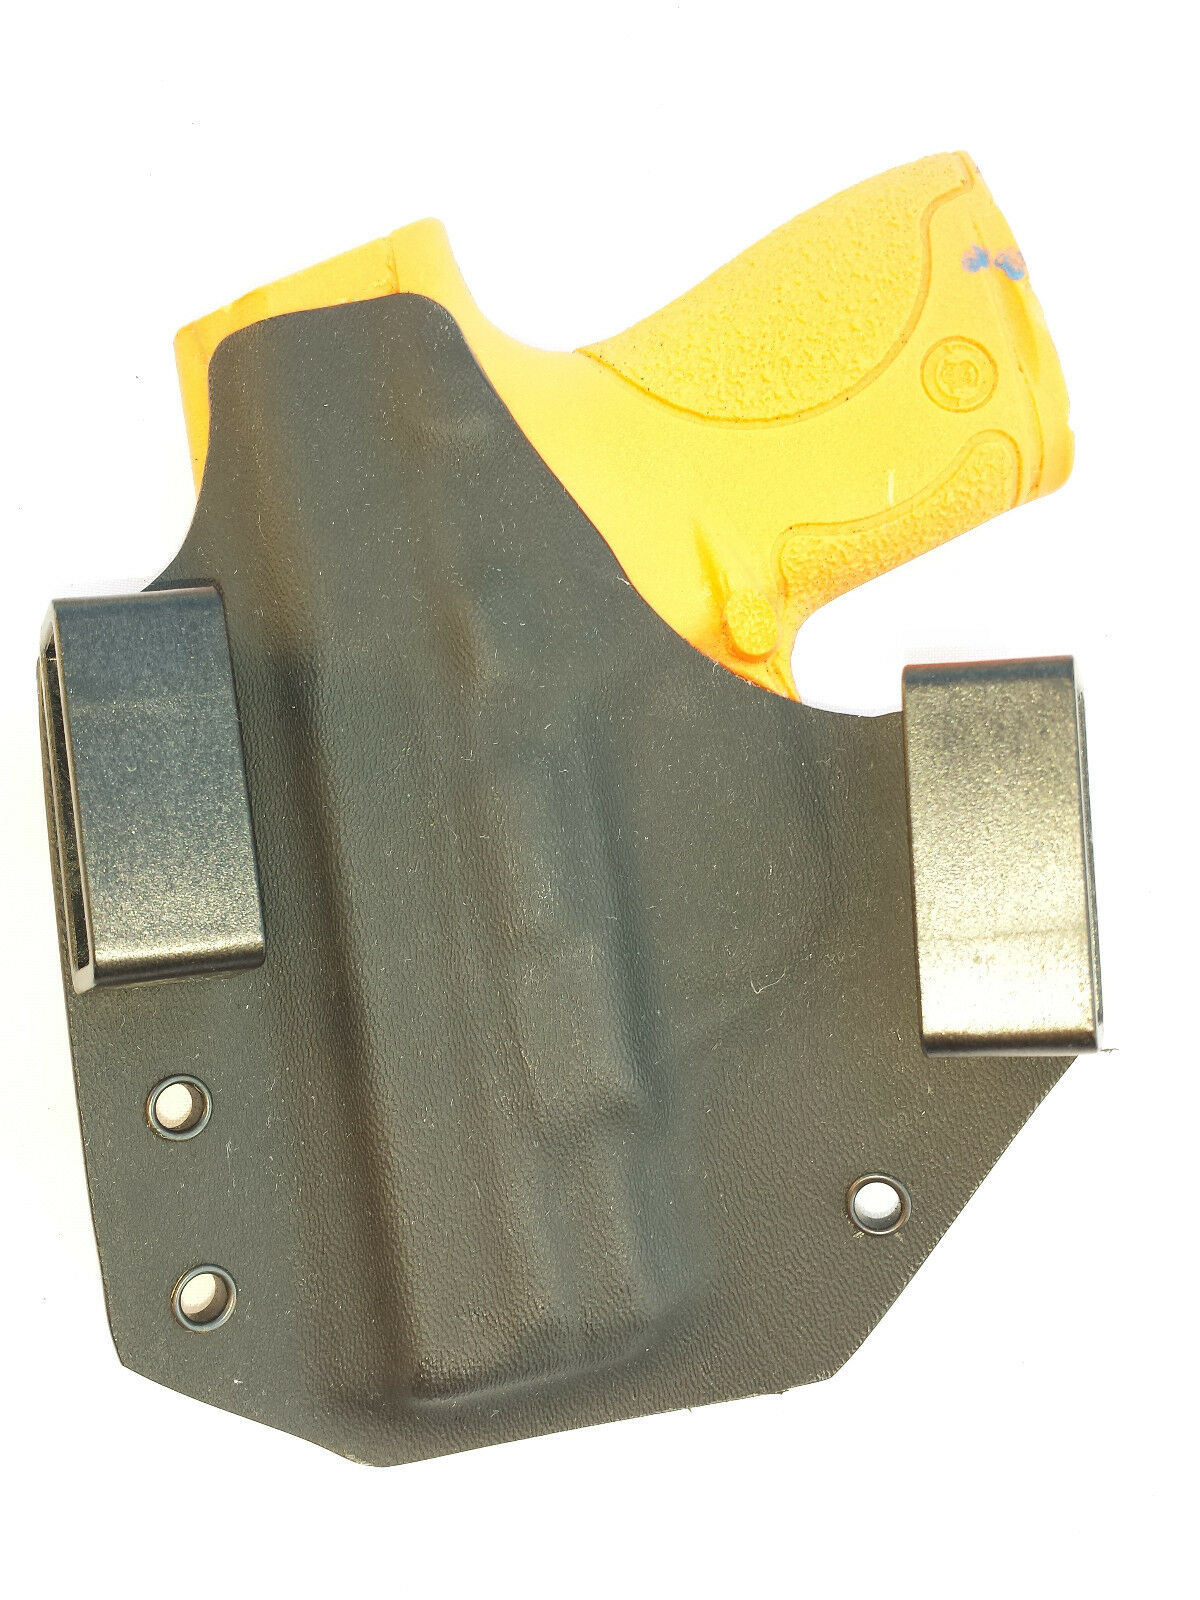 Fits XDS a XDS Fits 9mm Kydex Holster f19c0f